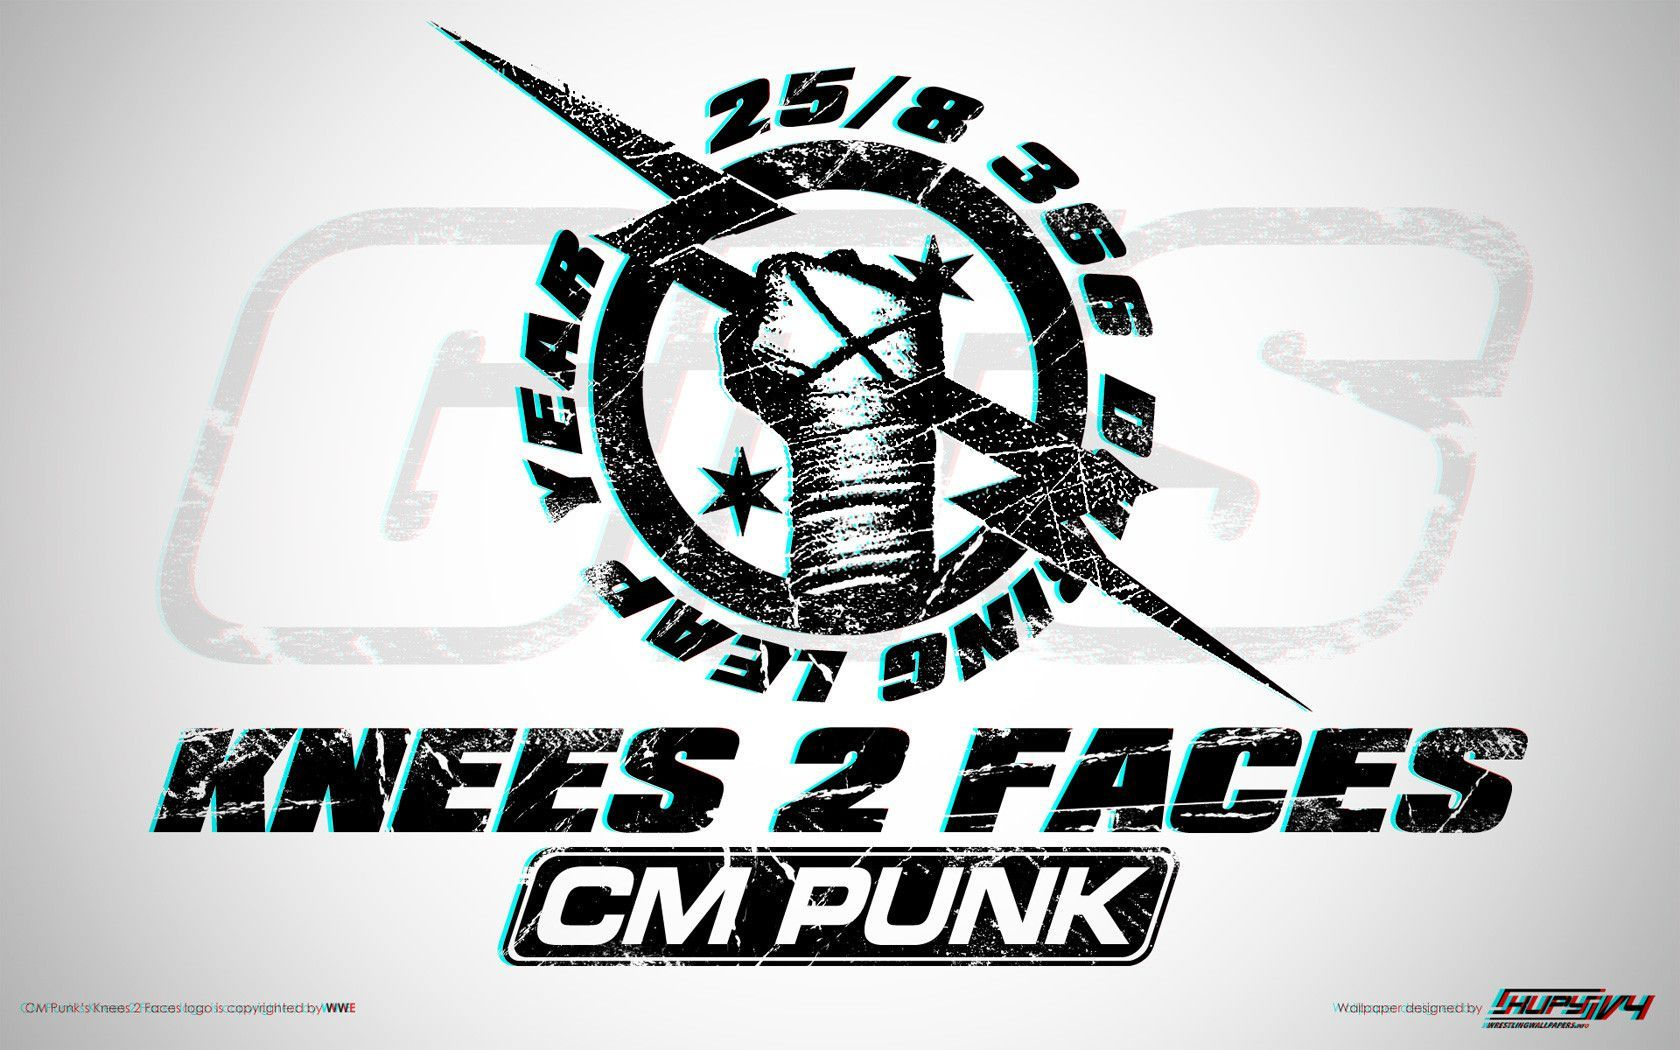 CM Punk Logo Wallpapers - Wallpaper Cave